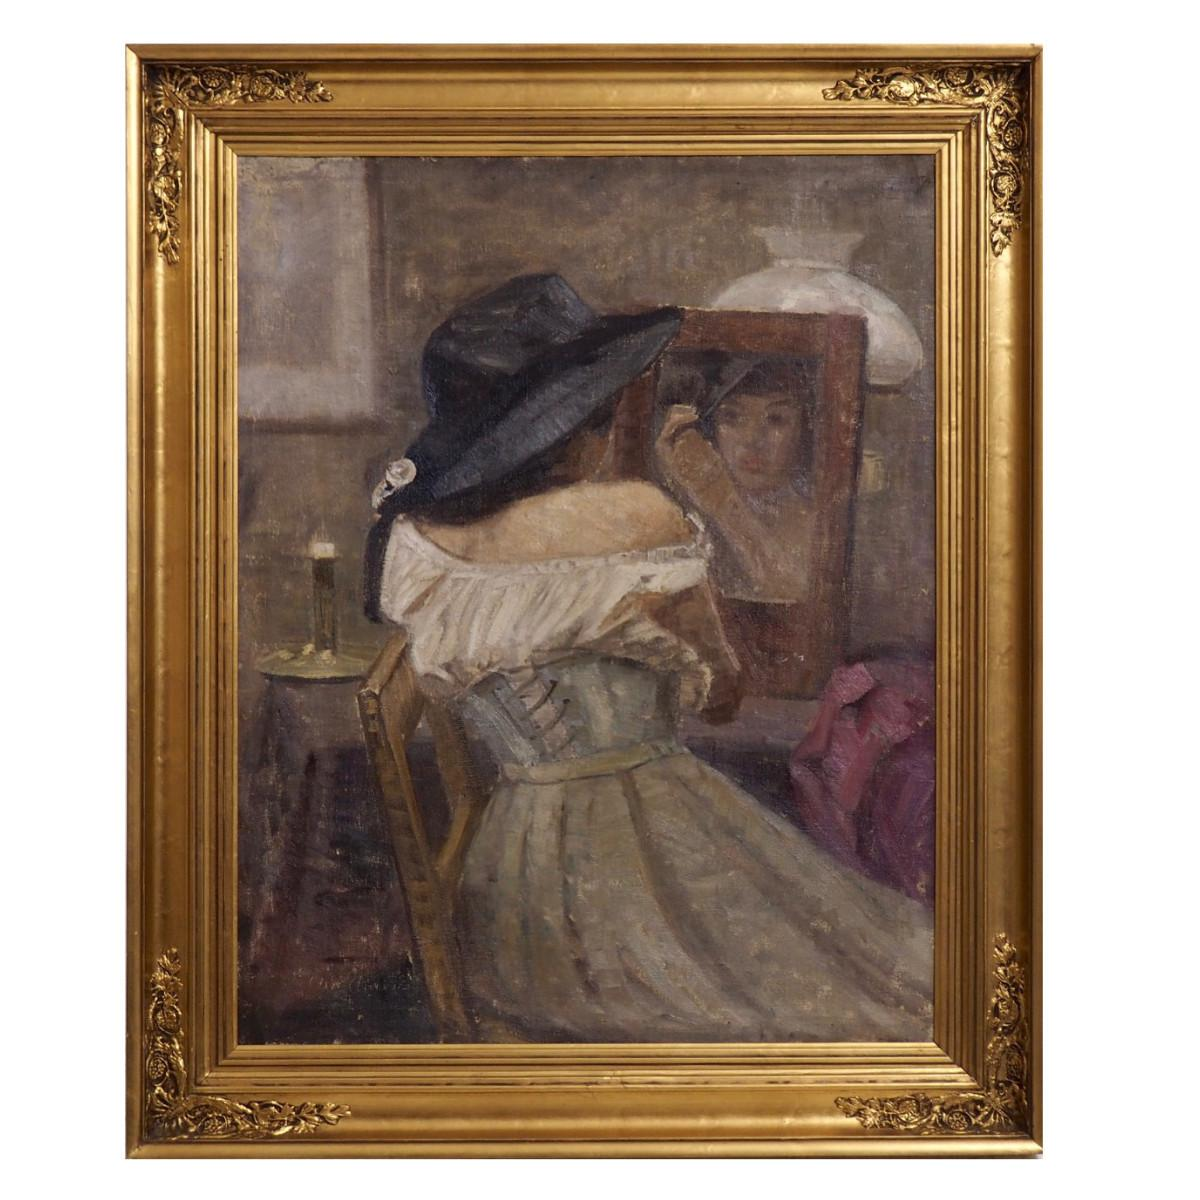 Very Fine Impressionist Painting, Signed, Oil on Canvas, circa 1880-1910